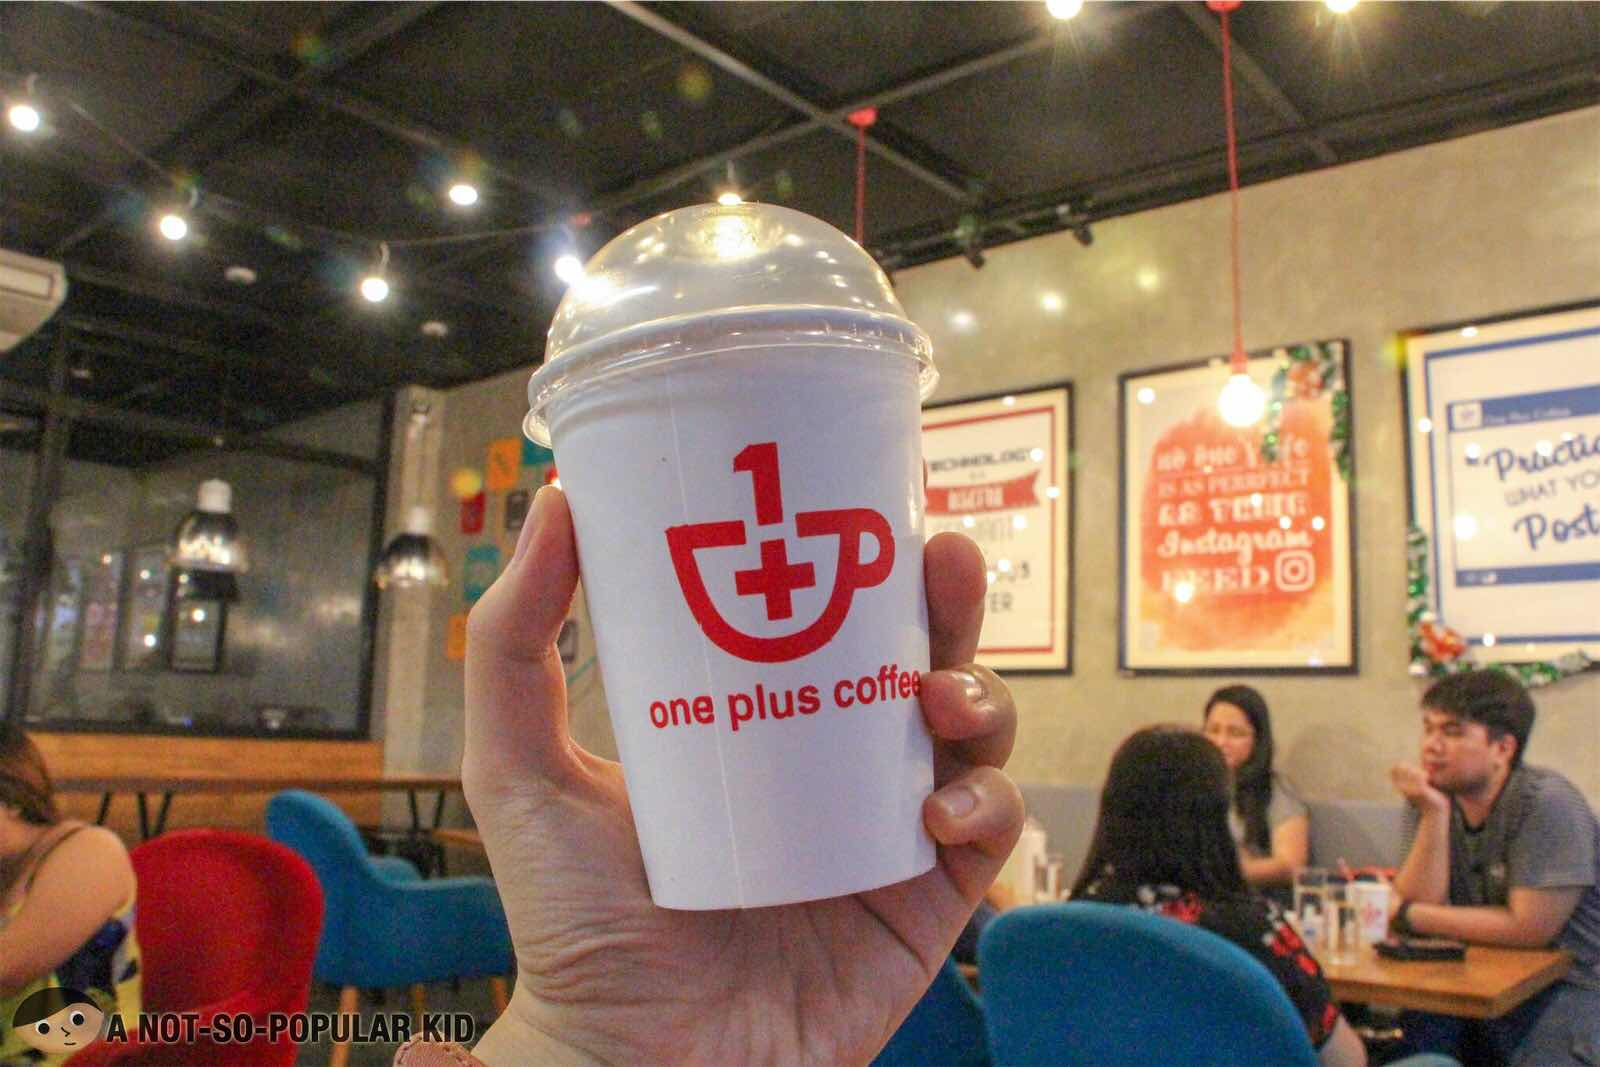 One Plus Coffee logo on a cup